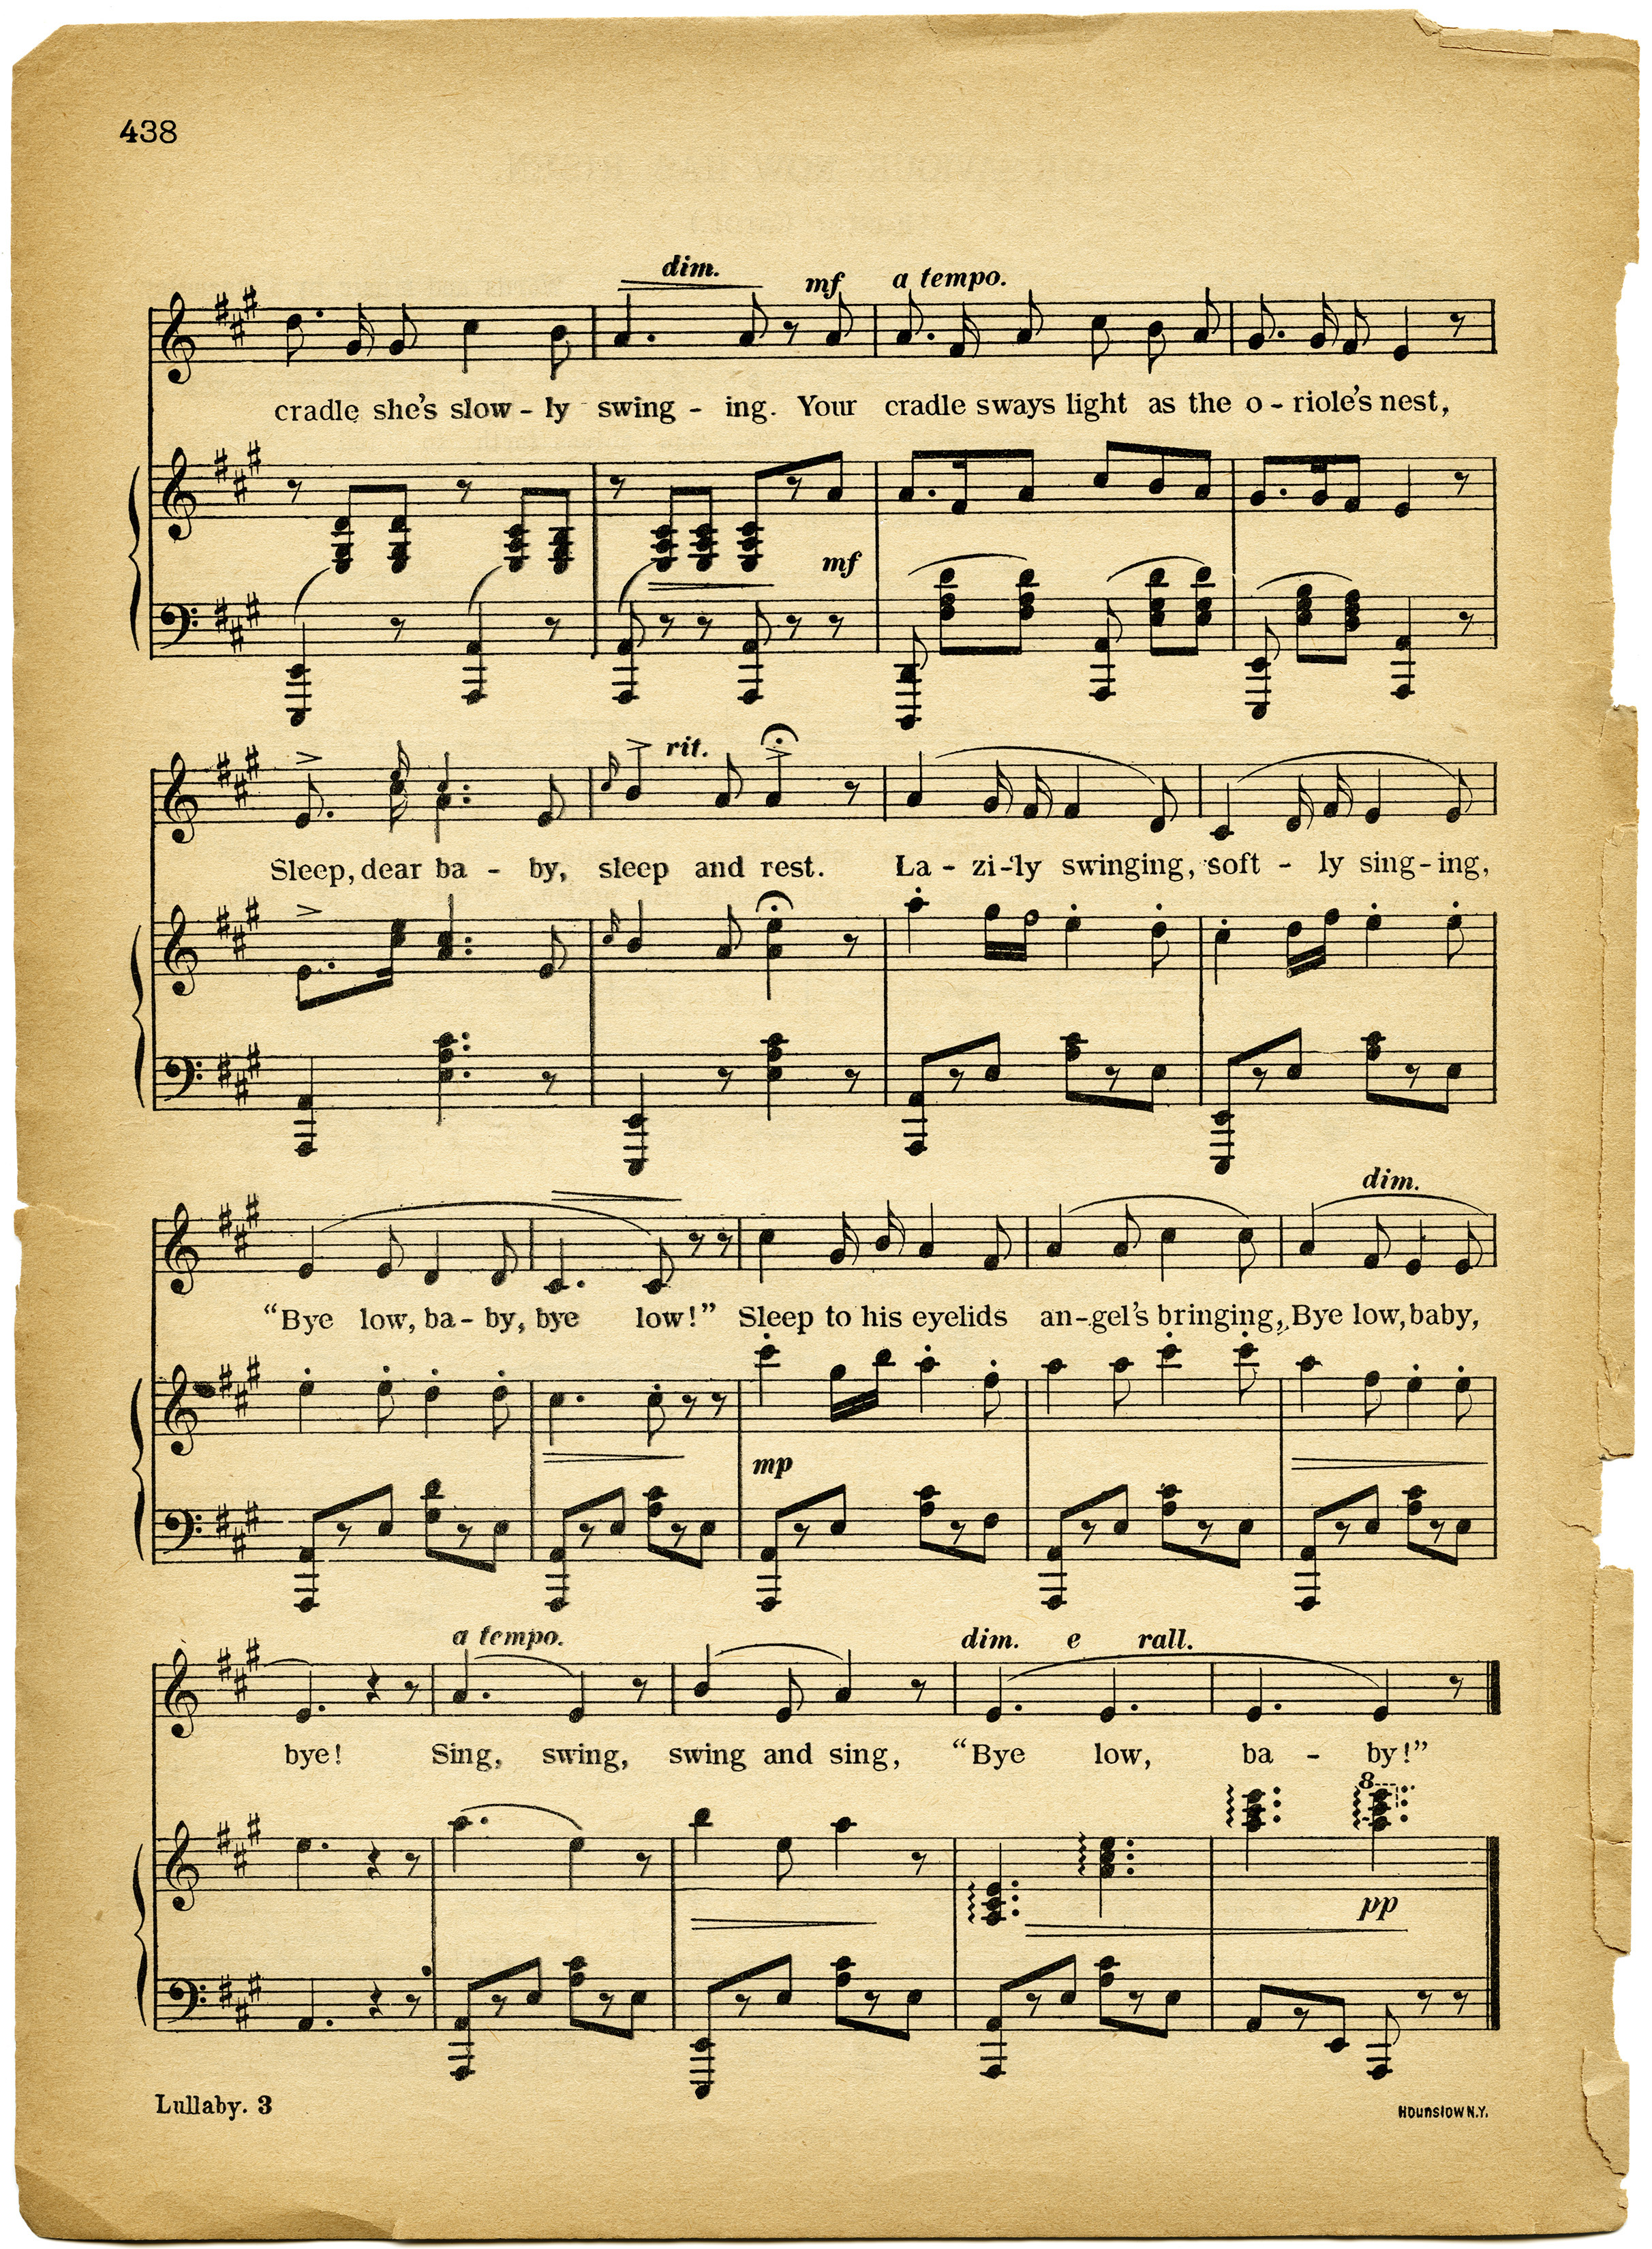 free vintage images lullaby sheet music old design shop blog. Black Bedroom Furniture Sets. Home Design Ideas